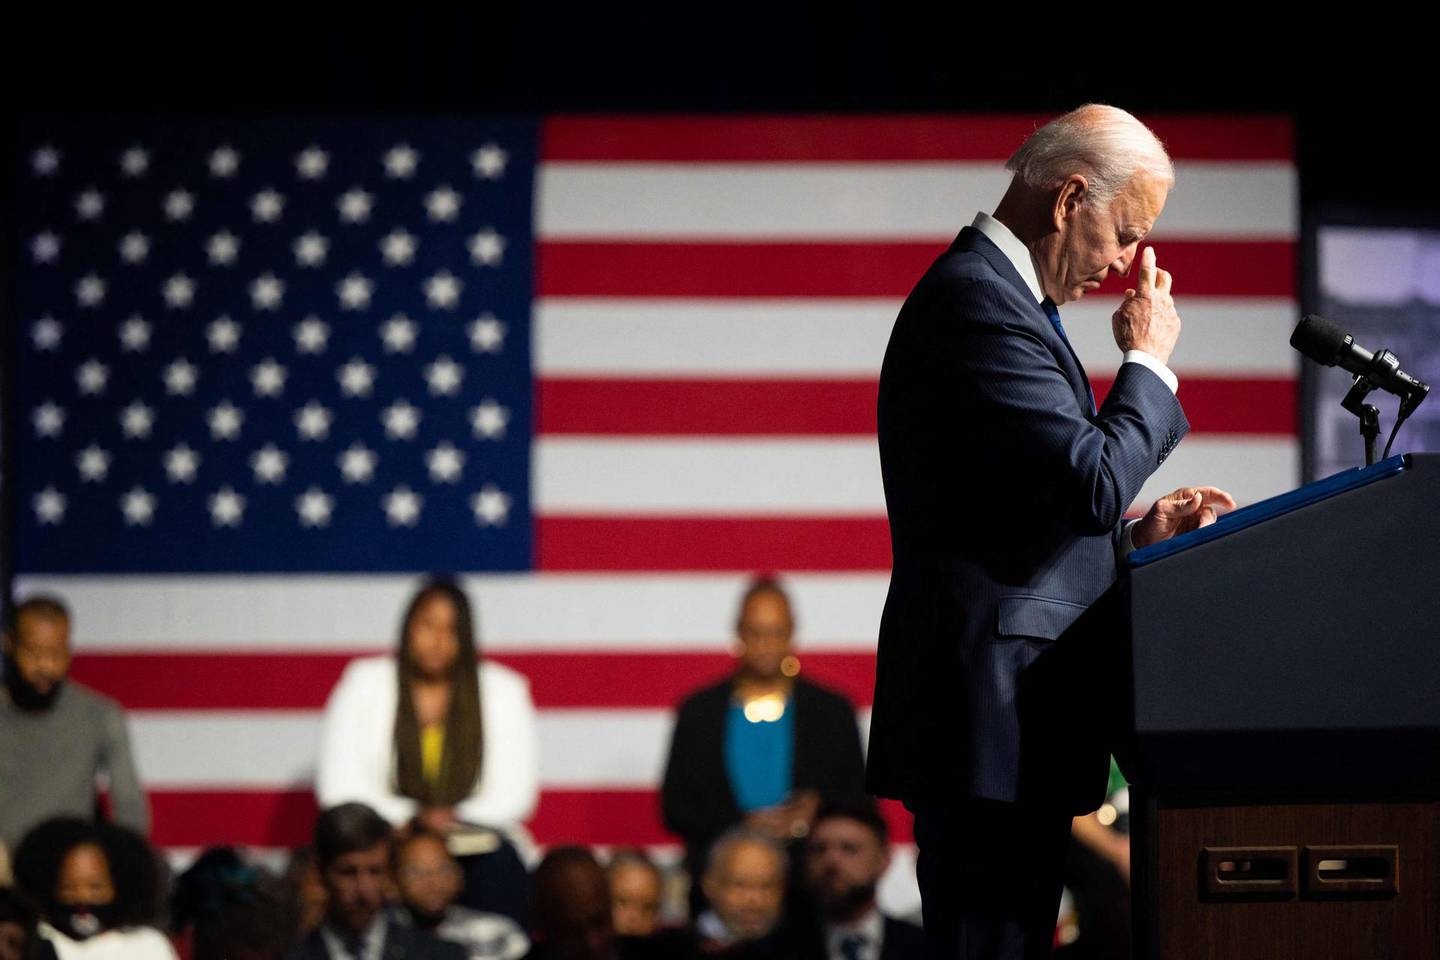 TOPSHOT - TULSA, OKLAHOMA - JUNE 01: U.S. President Joe Biden silently prays during a moment of silence during commemorations of the 100th anniversary of the Tulsa Race Massacre on June 01, 2021 in Tulsa, Oklahoma. President Biden stopped in Tulsa to commemorate the centennial of the Tulsa Race Massacre. May 31st of this year marks the centennial of when a white mob started looting, burning and murdering in Tulsa's Greenwood neighborhood, then known as Black Wall Street, killing up to 300 people and displacing thousands more. Organizations and communities around Tulsa continue to honor and commemorate survivors and community residents.   Brandon Bell/Getty Images/AFP / AFP / GETTY IMAGES NORTH AMERICA / Brandon Bell